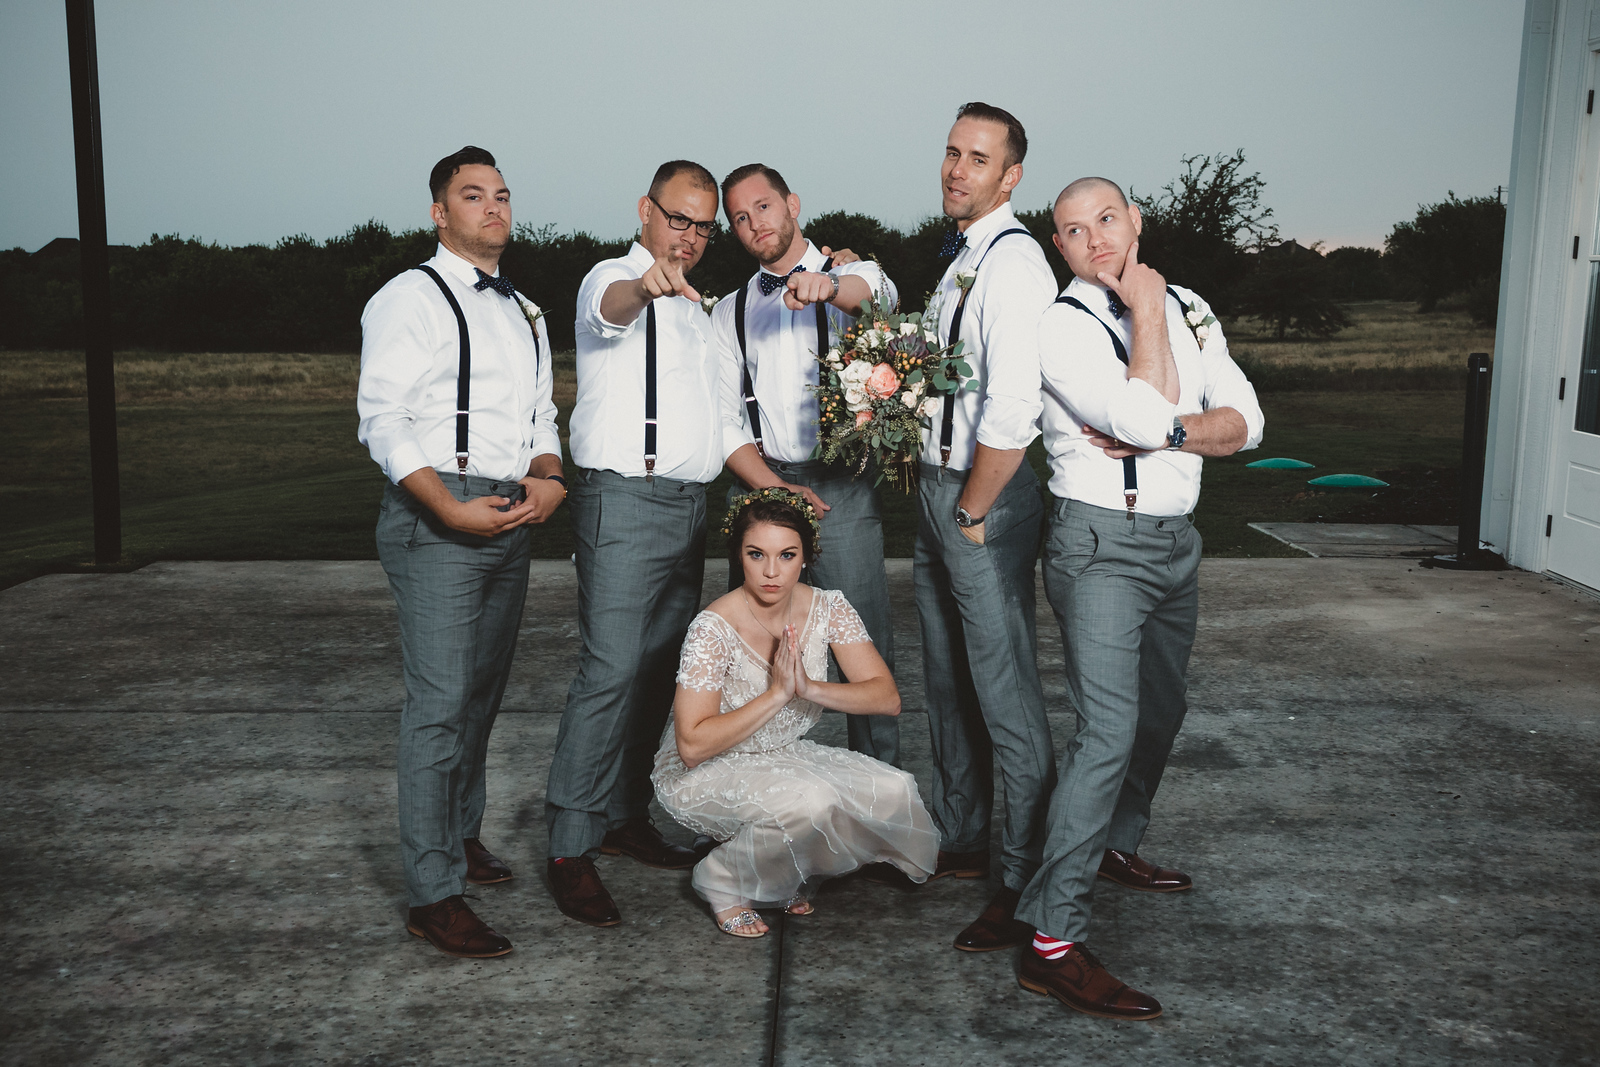 a groom pointing at the camera with his bride and groomsmen humorously posing around him